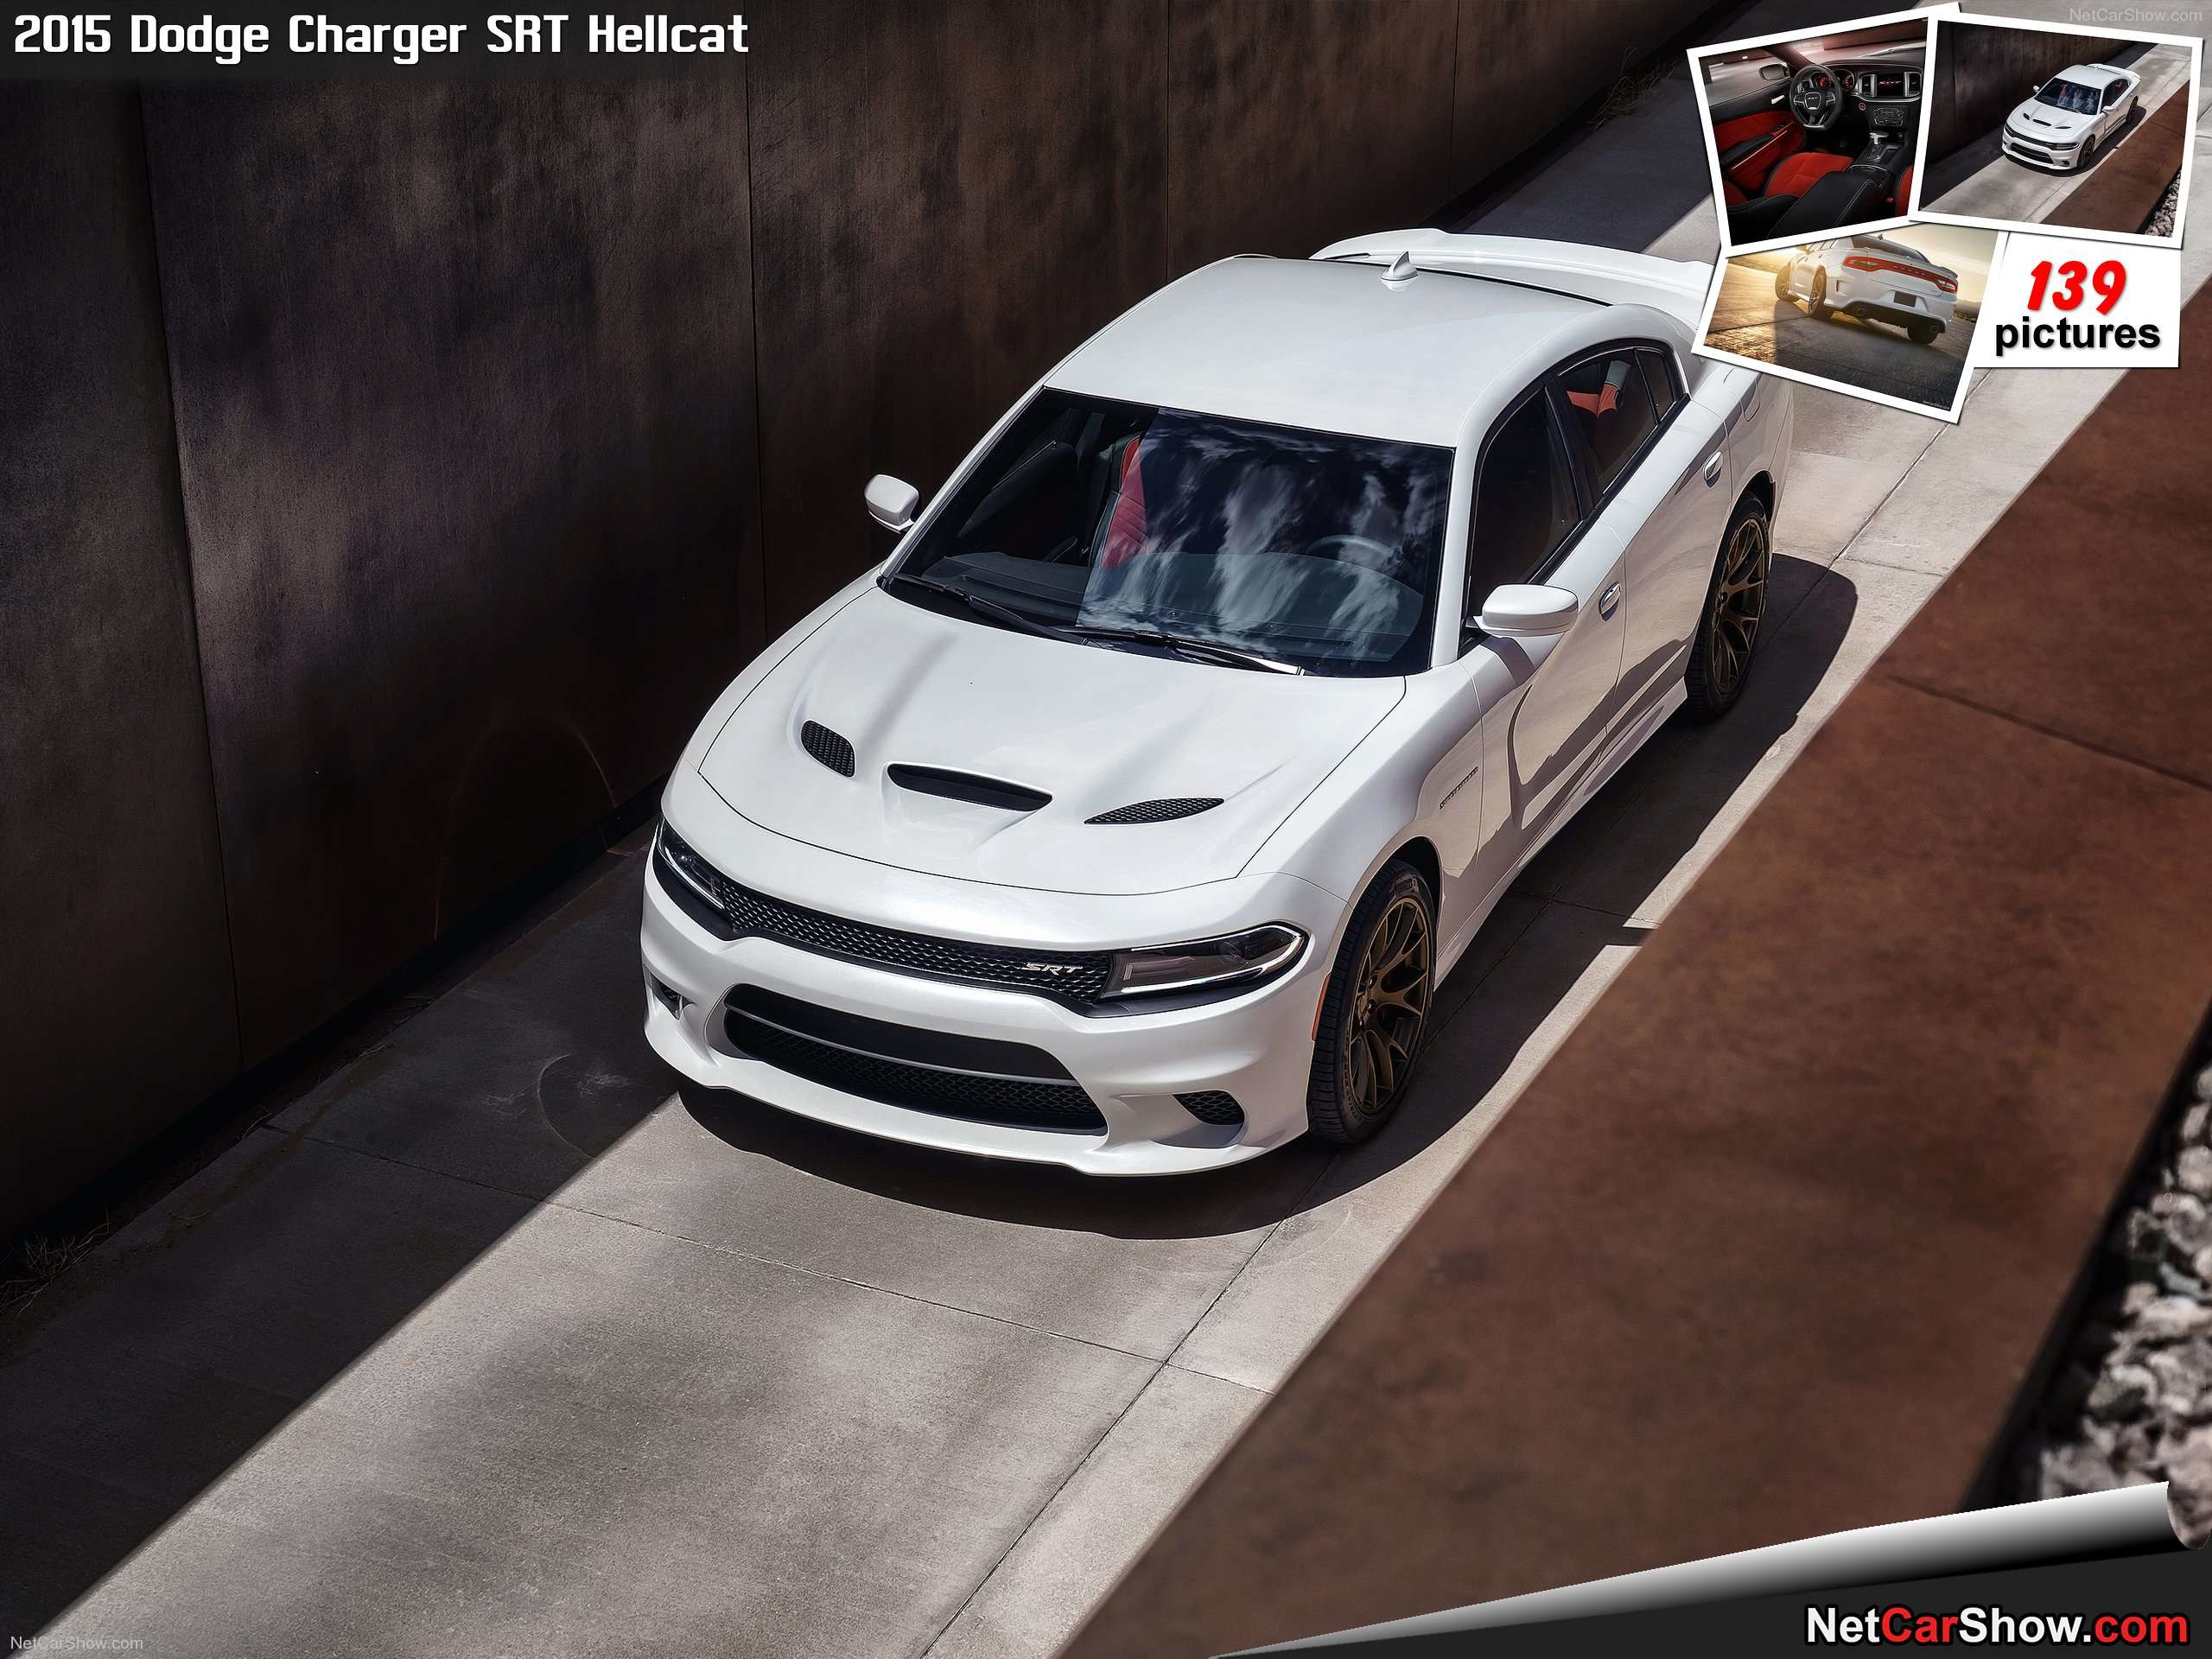 Res: 2560x1920, Dodge Charger SRT Hellcat (2015)